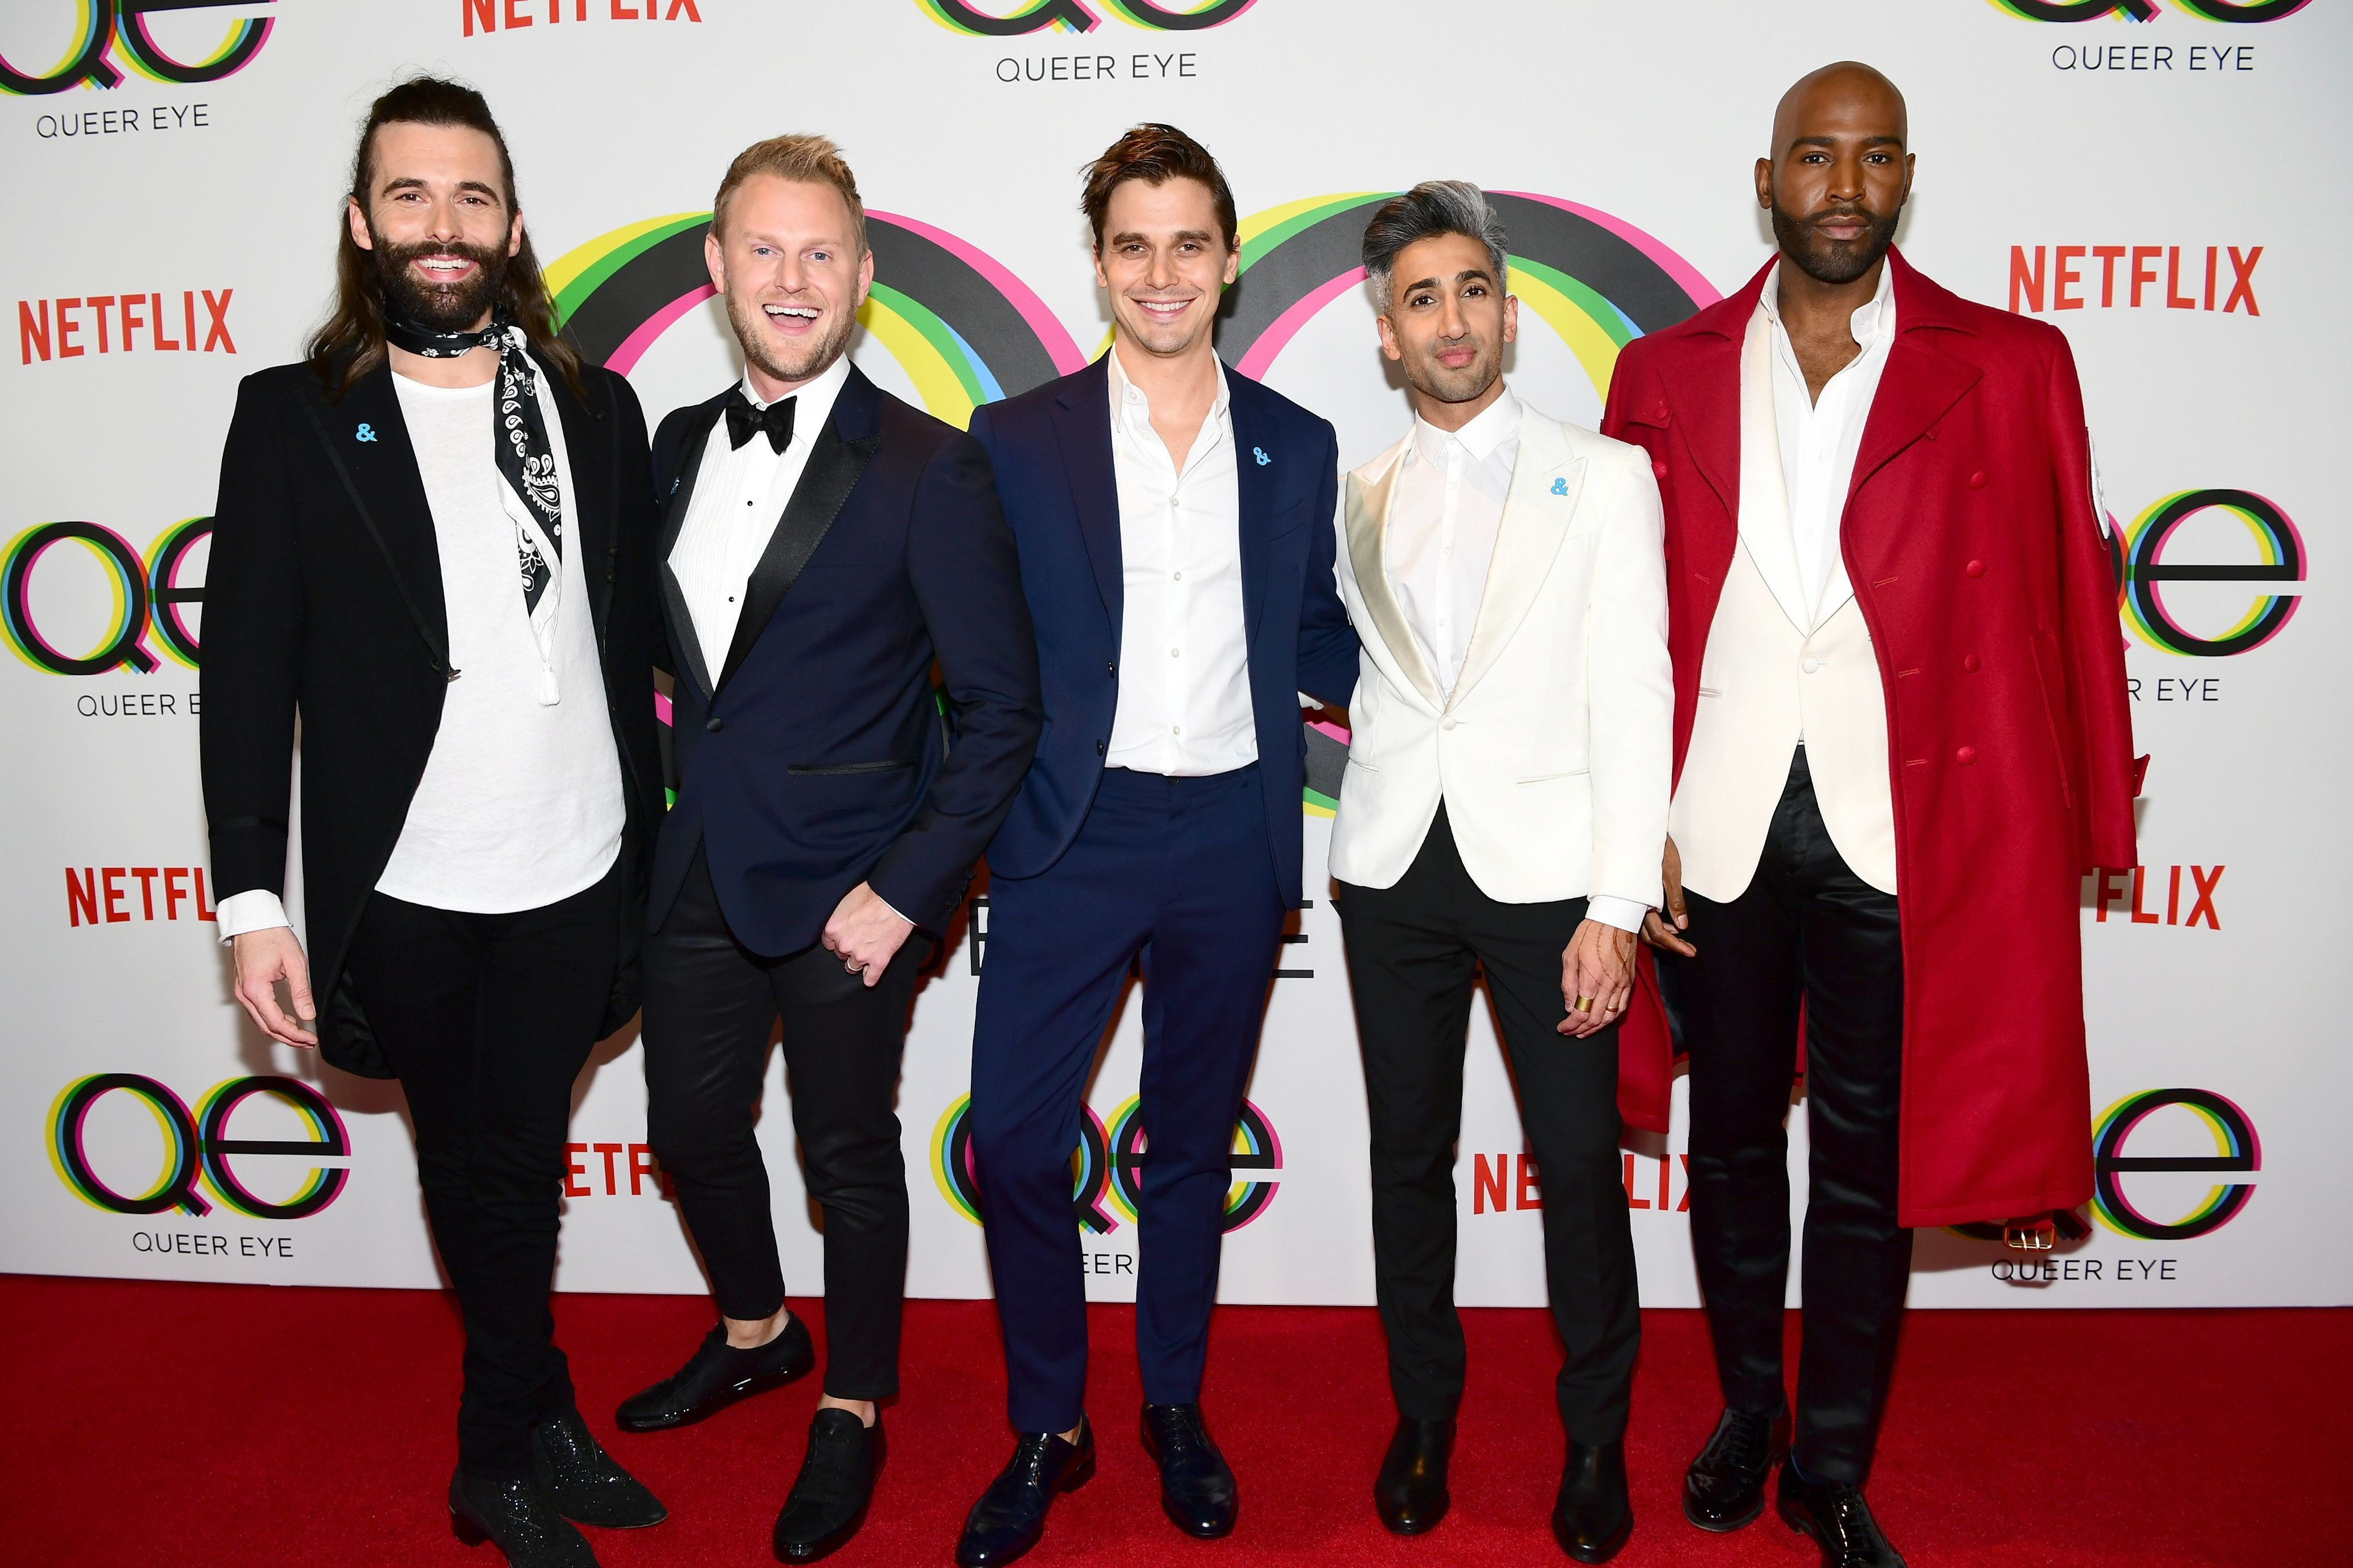 Left to right: Jonathan Van Ness, Bobby Berk, Antoni Porowski, Tan France and Karamo Brown